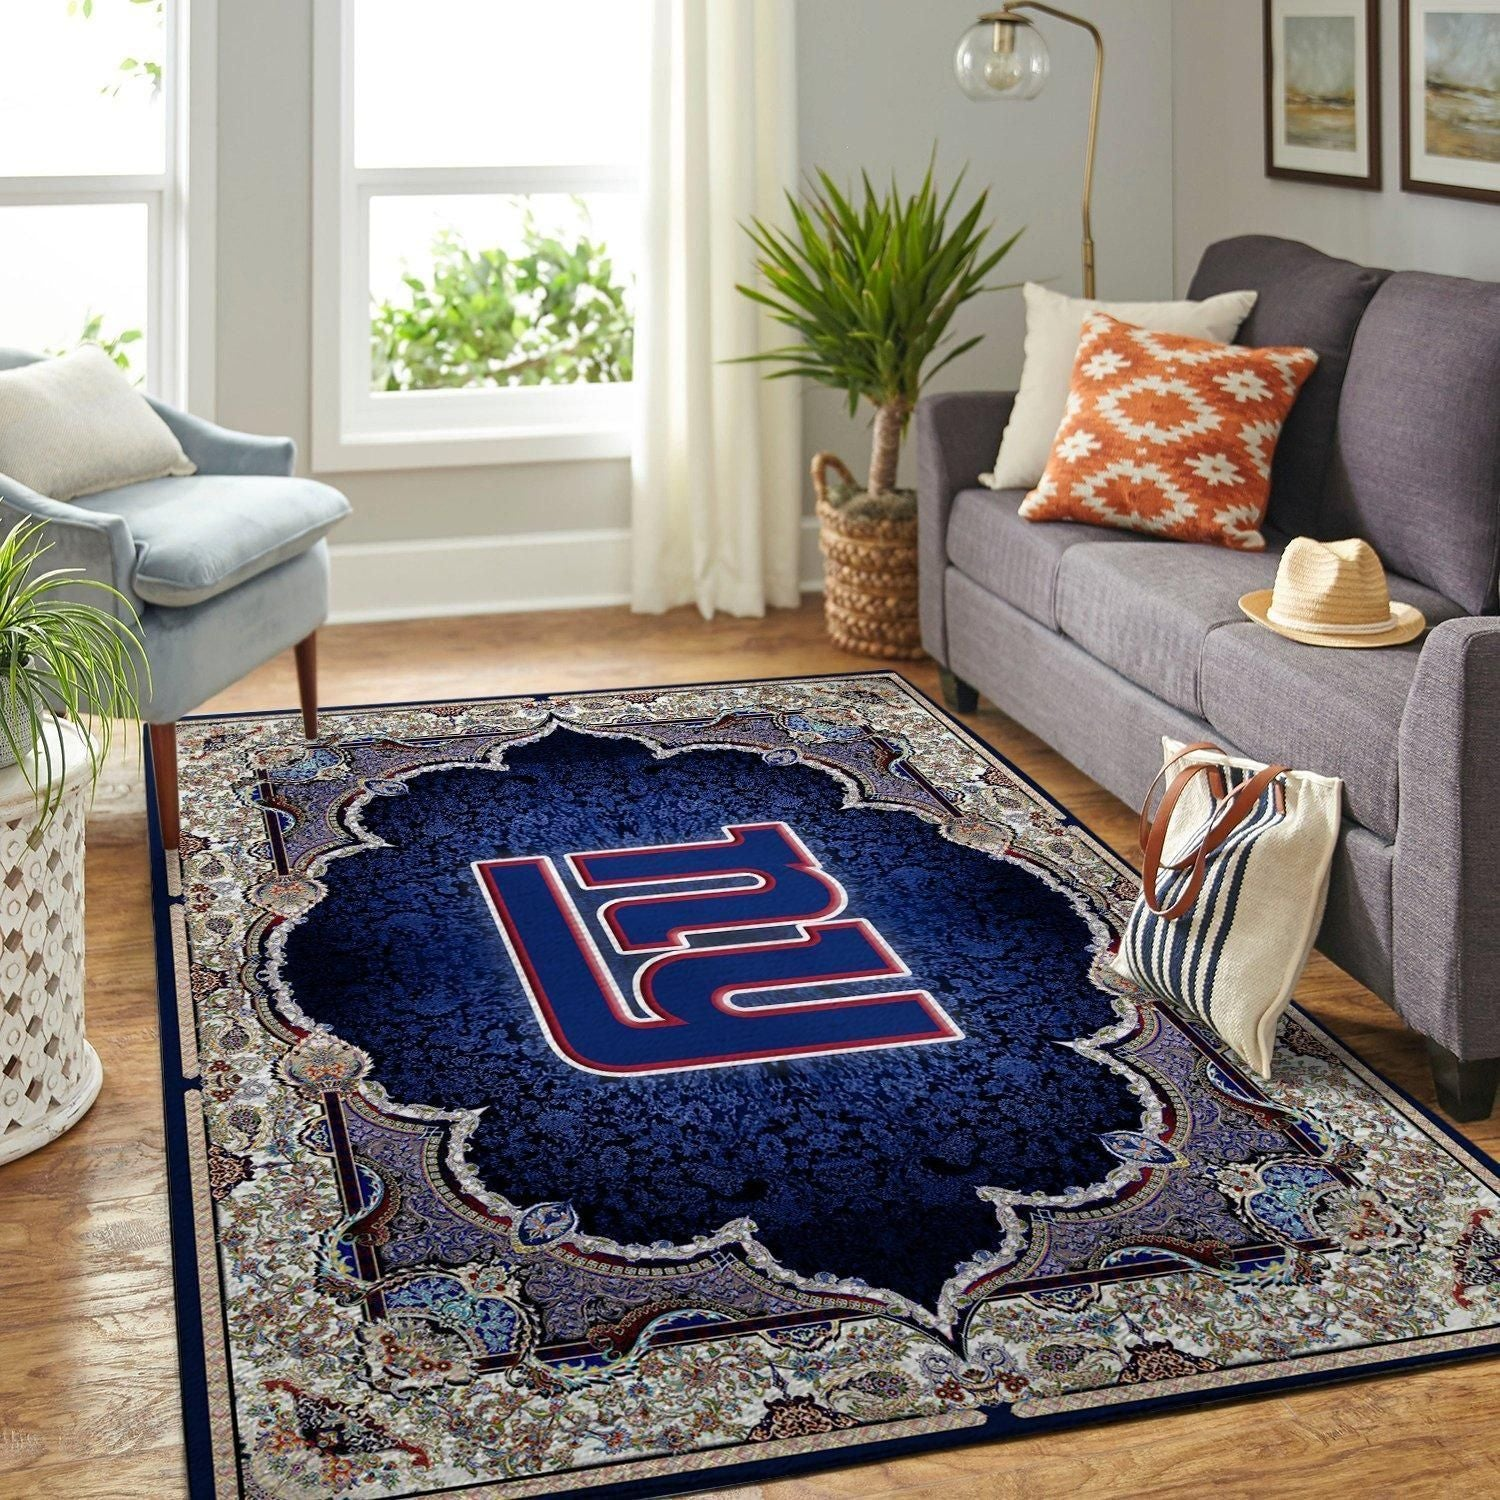 New York Giants Area Rugs NFL Football Team Living Room Carpet Carpet Sport Custom Area Floor Home Decor